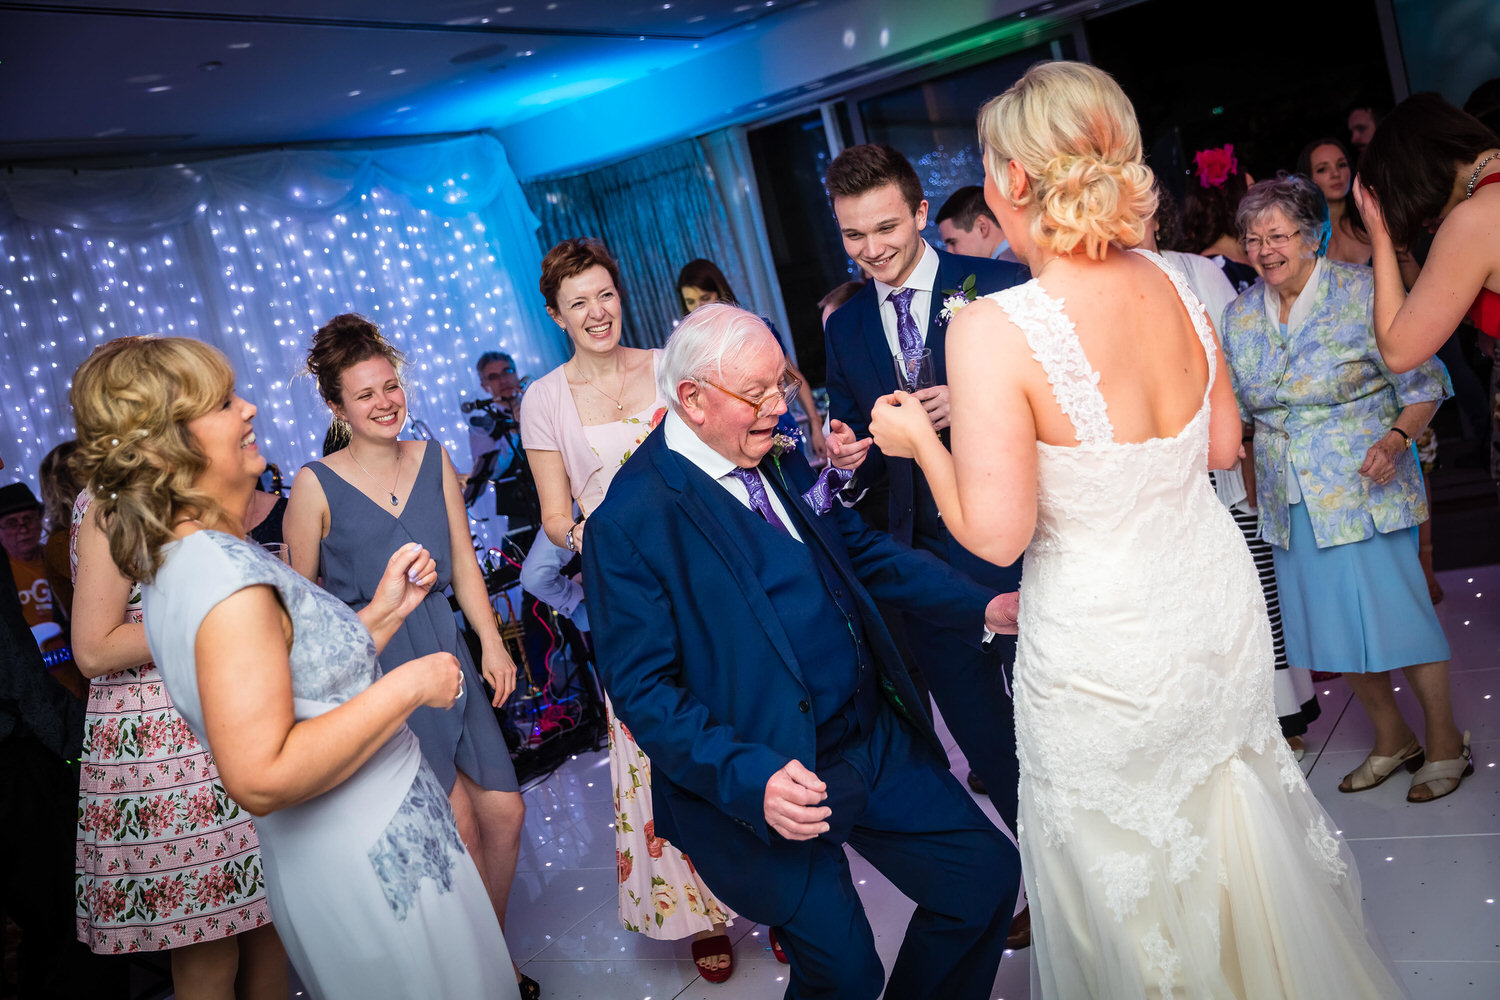 grandad dancing at wedding reception